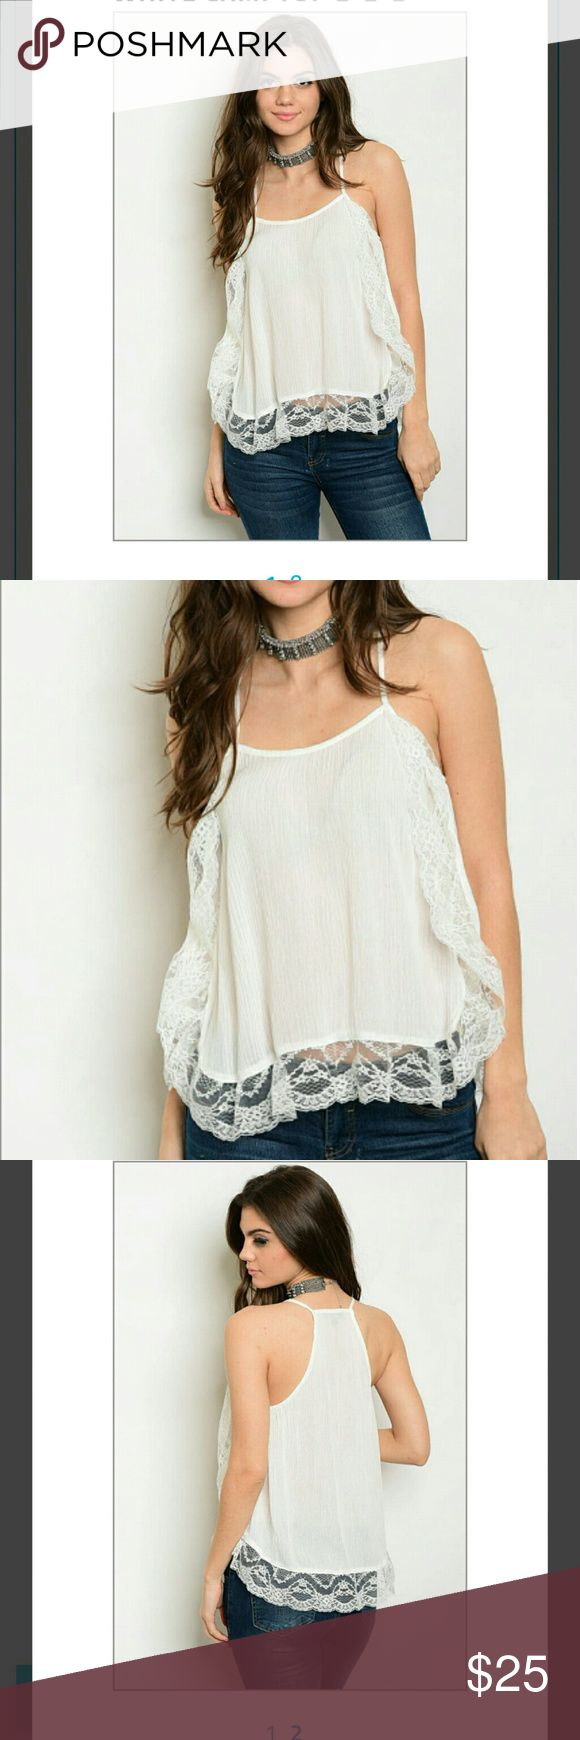 ????PreOrder???? Off White Cami Top Off White Cami Top 100% Rayon Beautiful Top Smoke Free Environment Tops